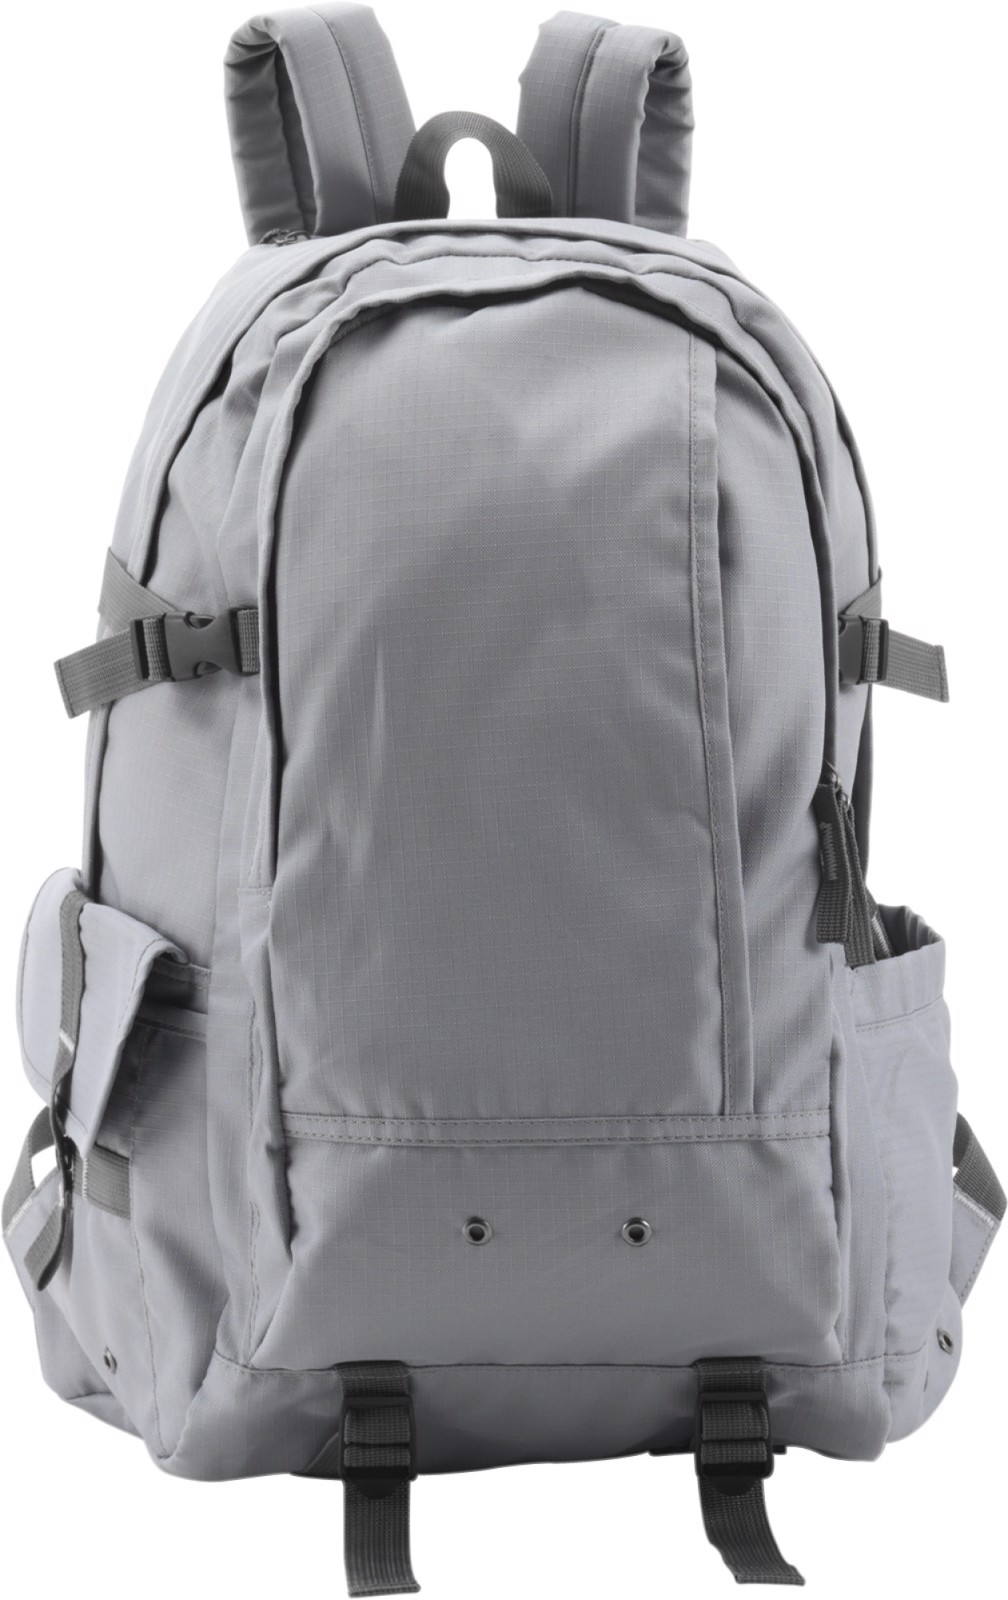 Ripstop (210D) backpack - Grey